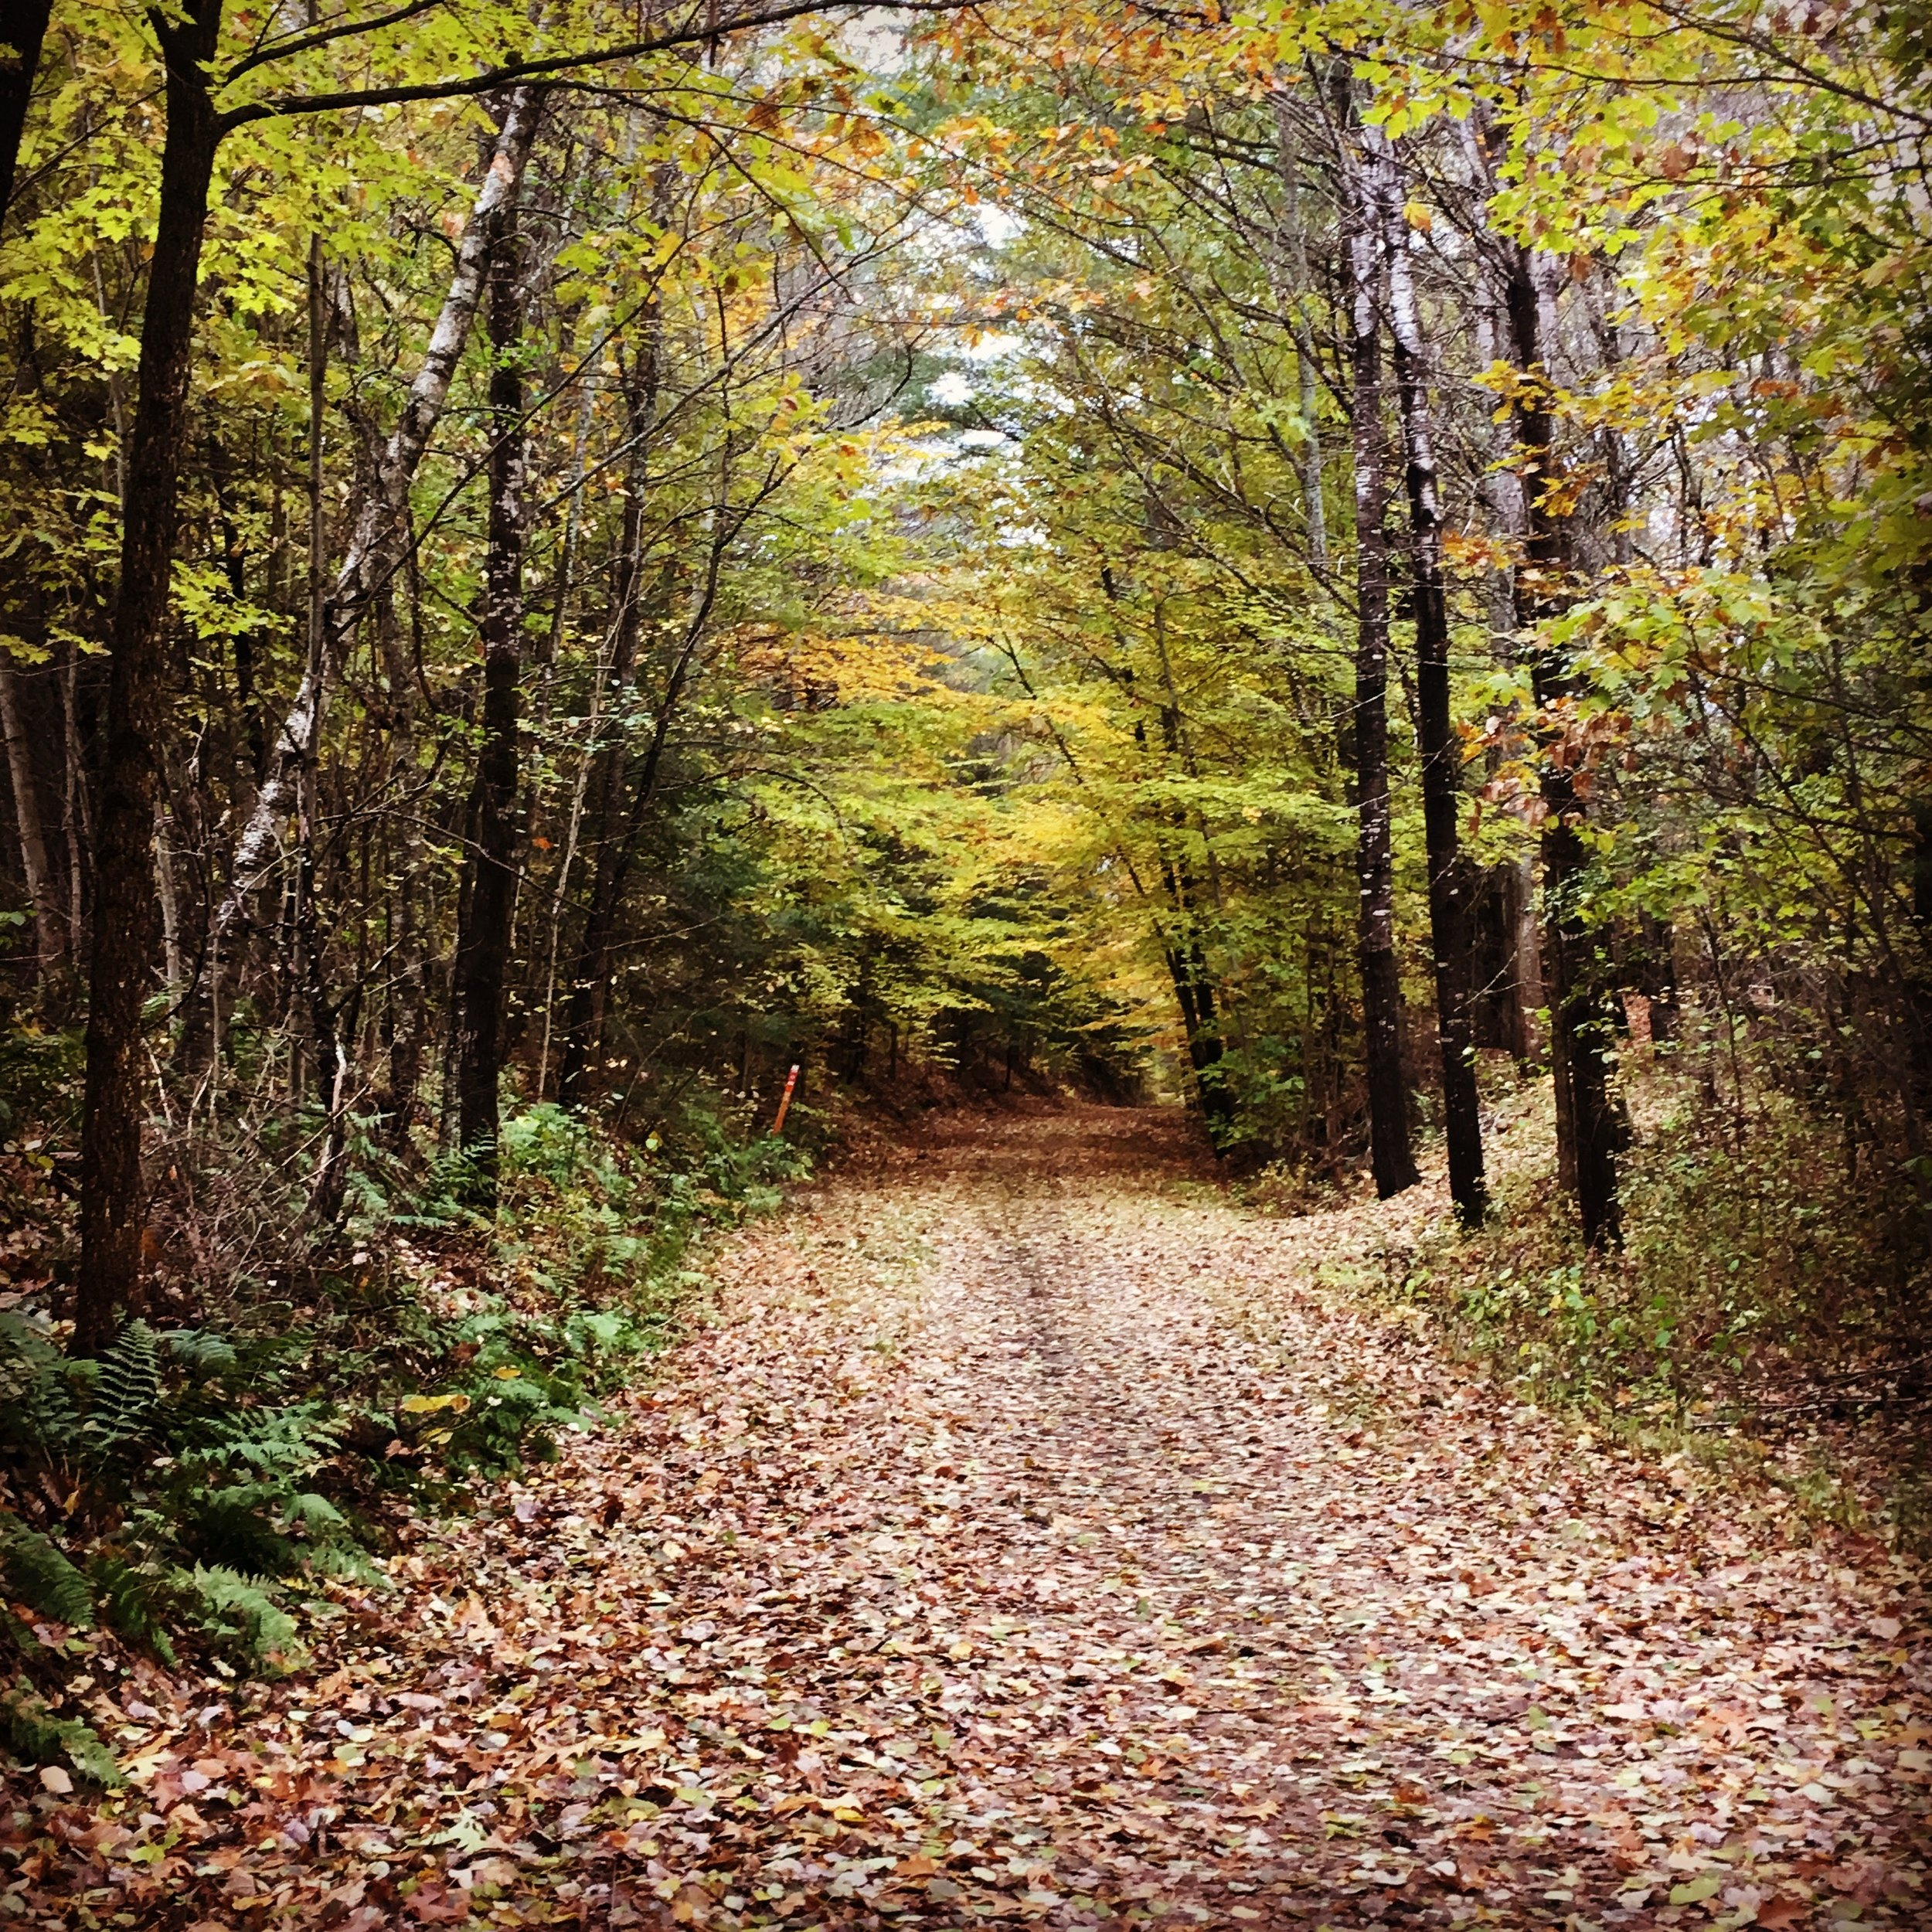 Northern Rail-Trail in Enfield, New Hampshire